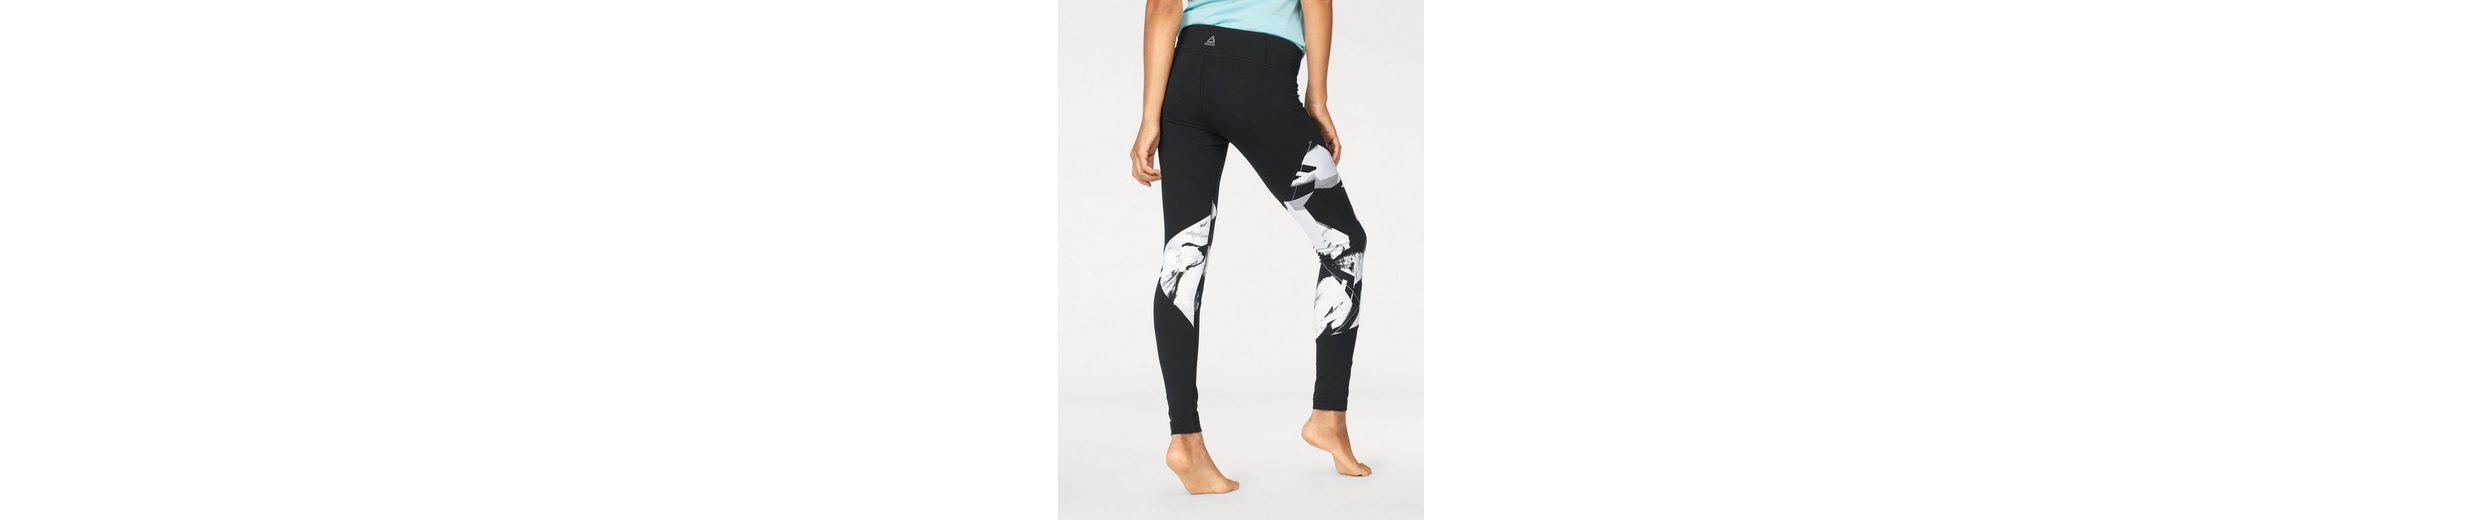 Leggings PRINT Reebok WOR CS Reebok TIGHTS PANEL ALLOVER Leggings EvqxpE